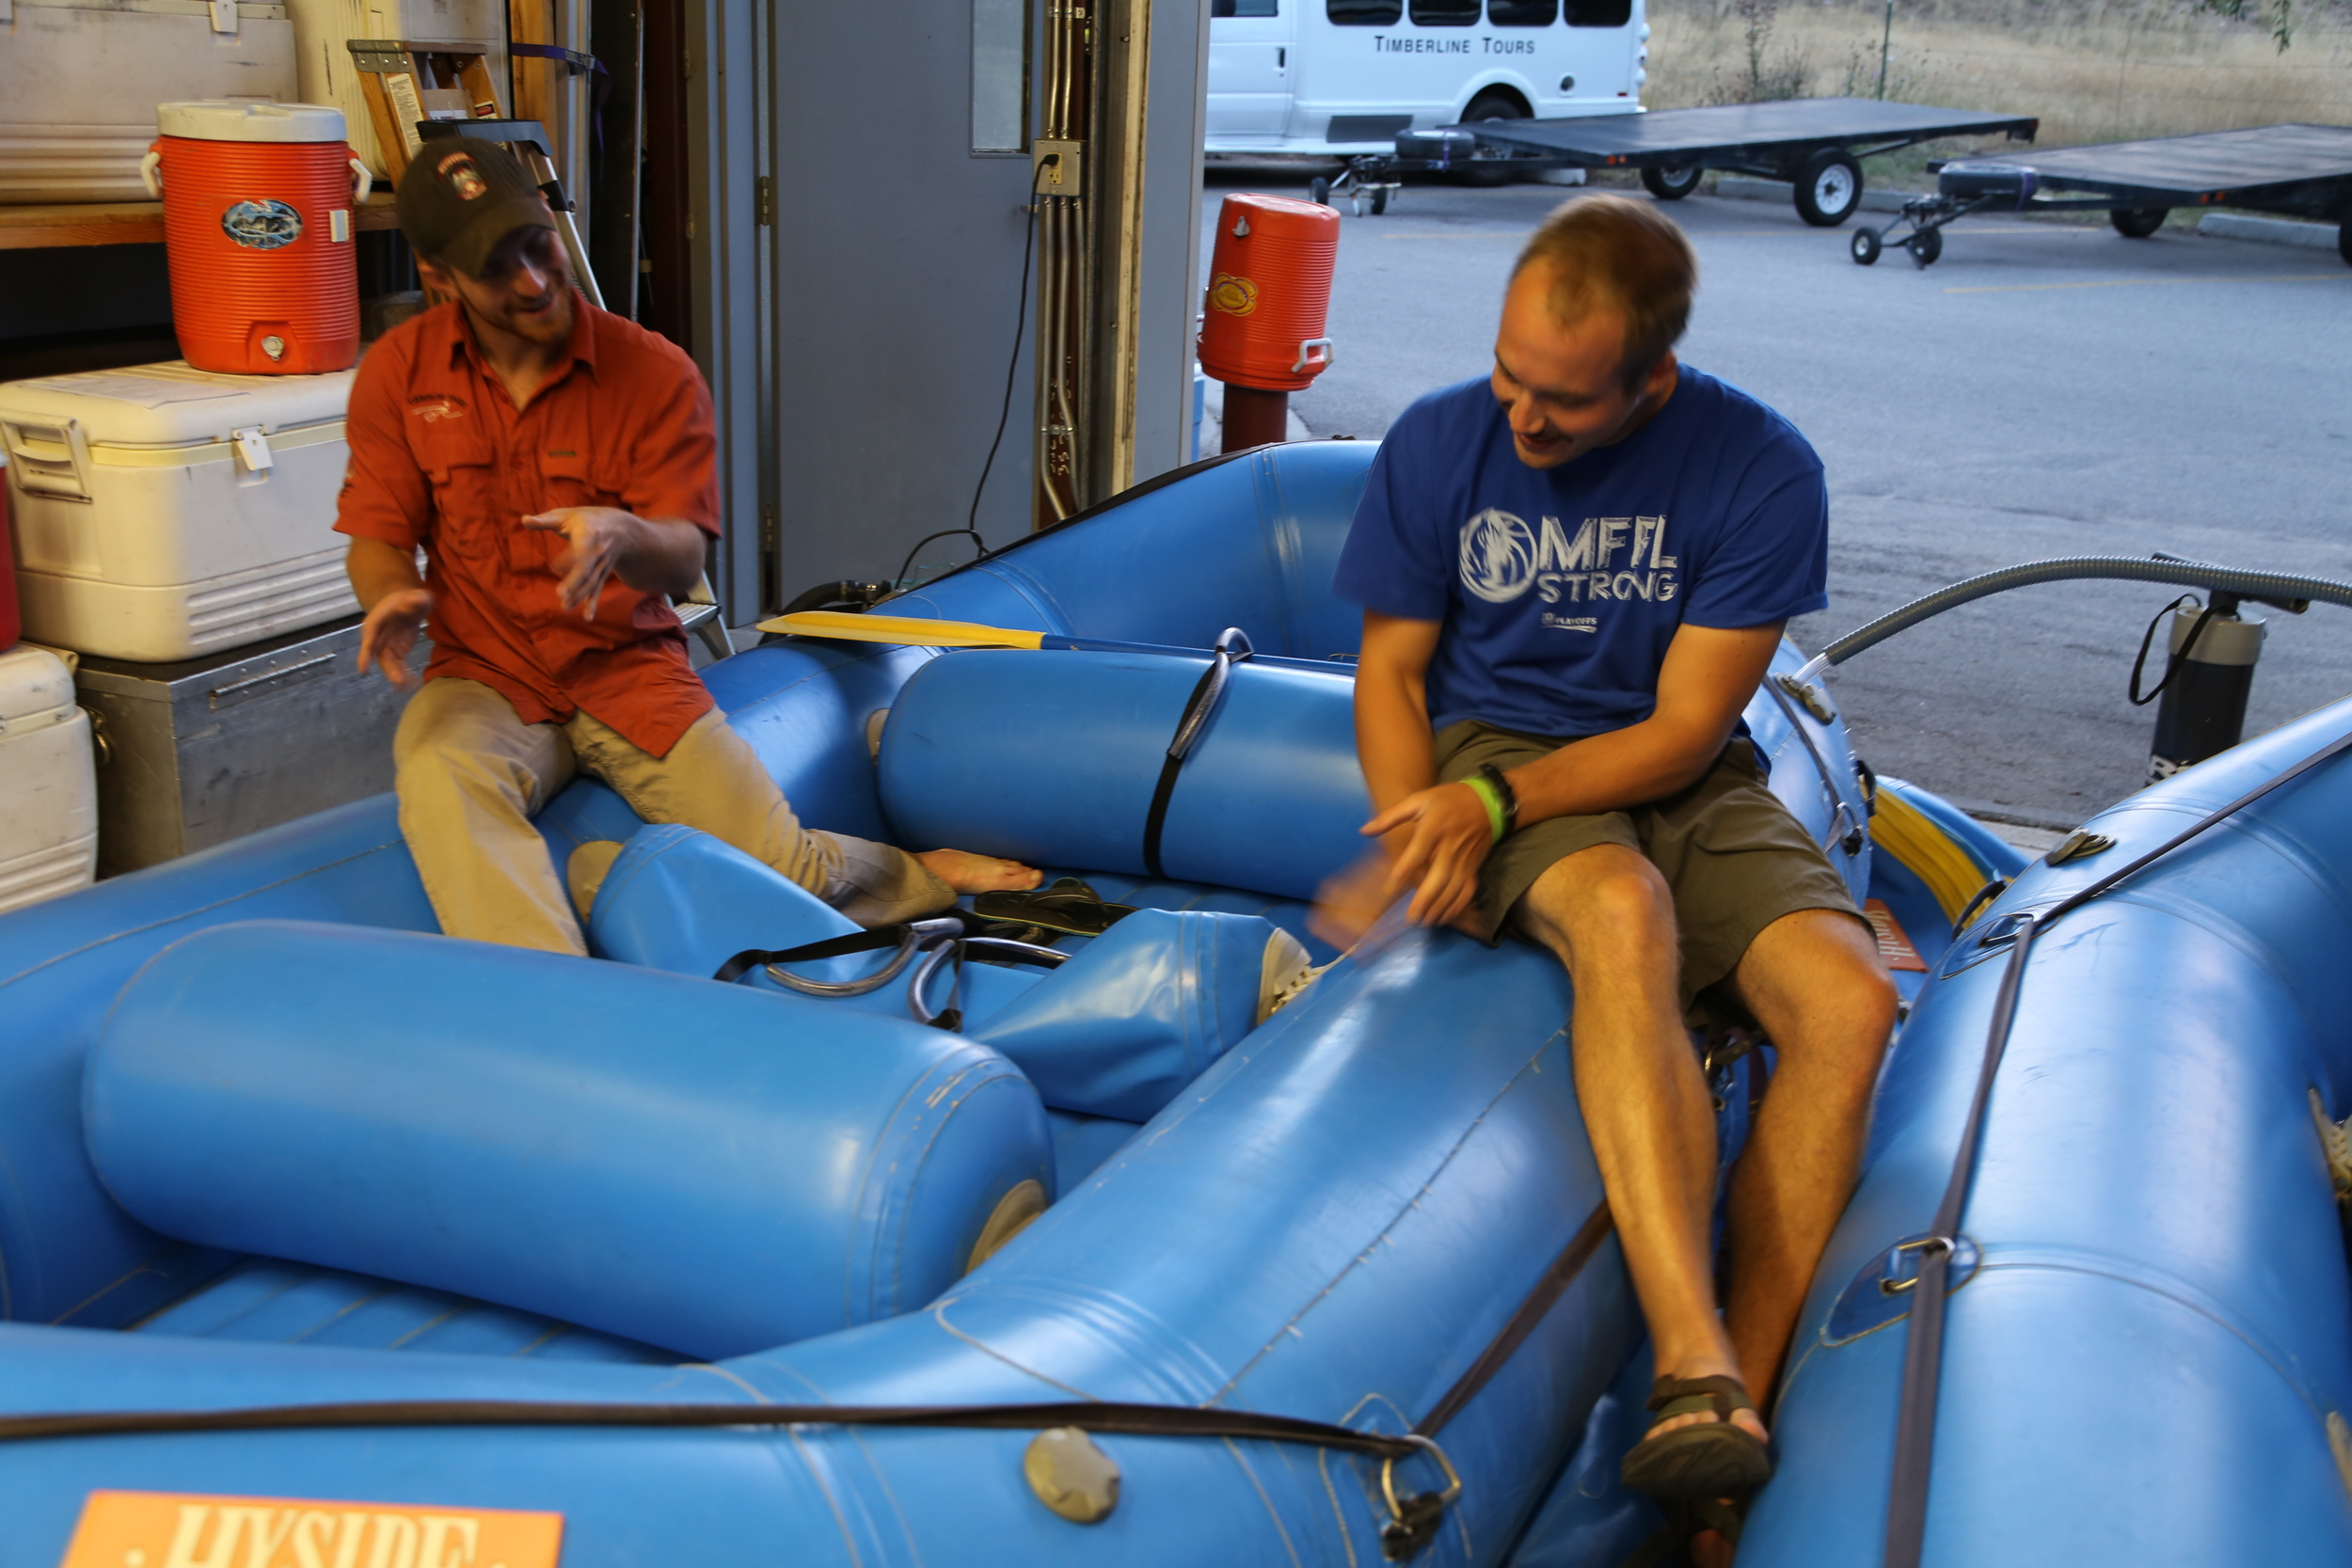 Shawn and Christian getting to know their race boat and talking about their lines.